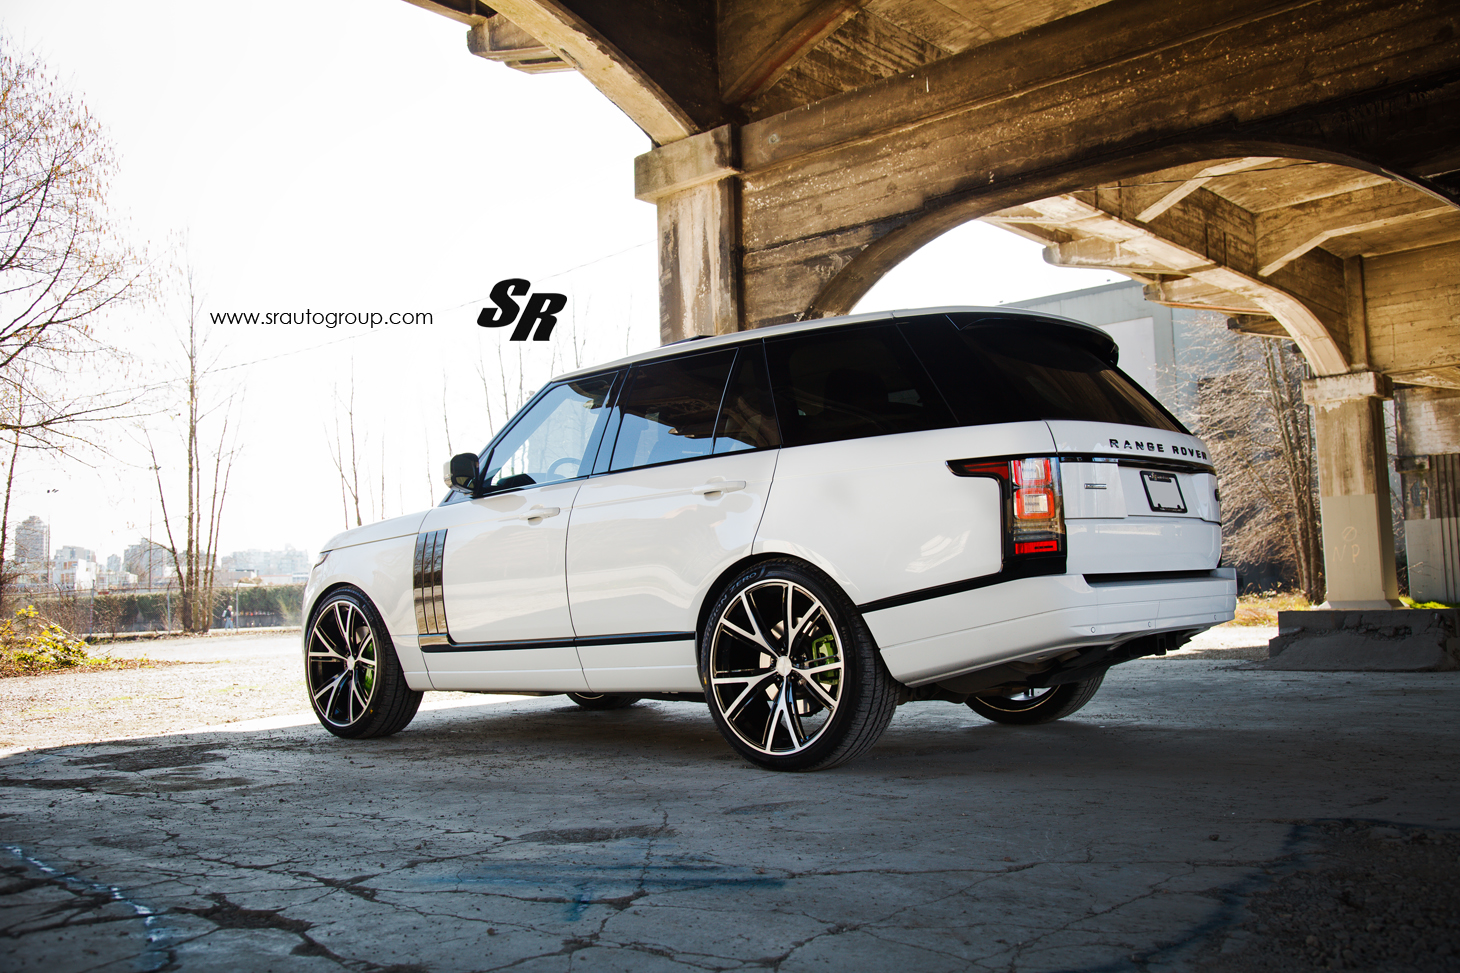 Bf Mkii Fpv F R Spec White moreover Rr Mtz X furthermore Land Rover Range Rover Sport Agl Gloss White Black Accents as well Range Rover Vogue Matte Black Rear Angled besides Land Rover Range Rover Sport Supercharged Project Kahn Rs Cosworth C. on 2015 range rover sport white